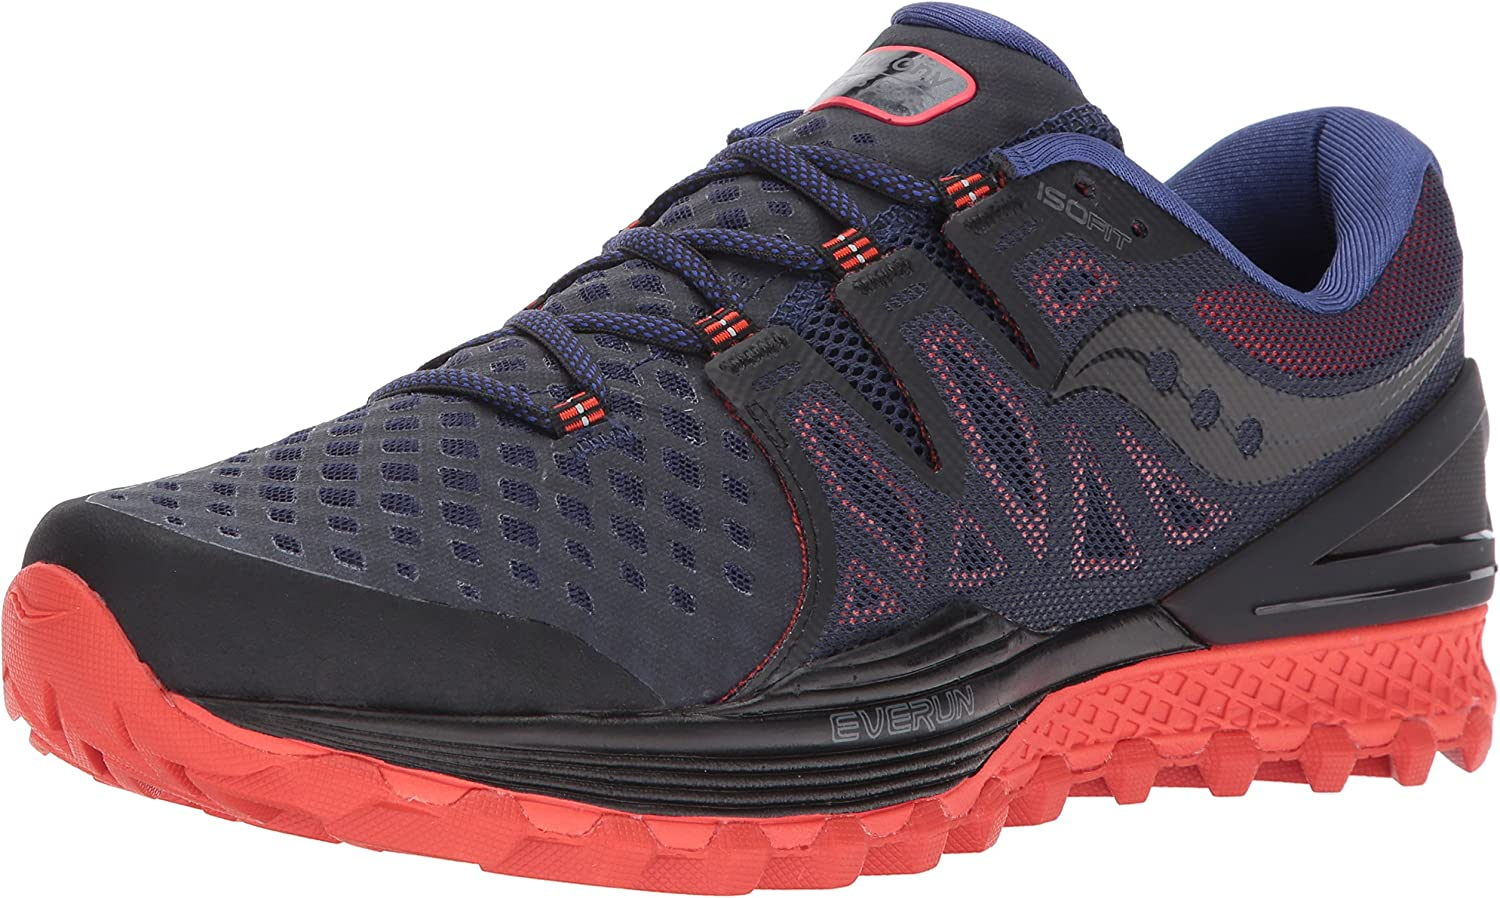 Saucony Men's Xodus Running-Shoes 2 Iso Max 69% OFF Charlotte Mall